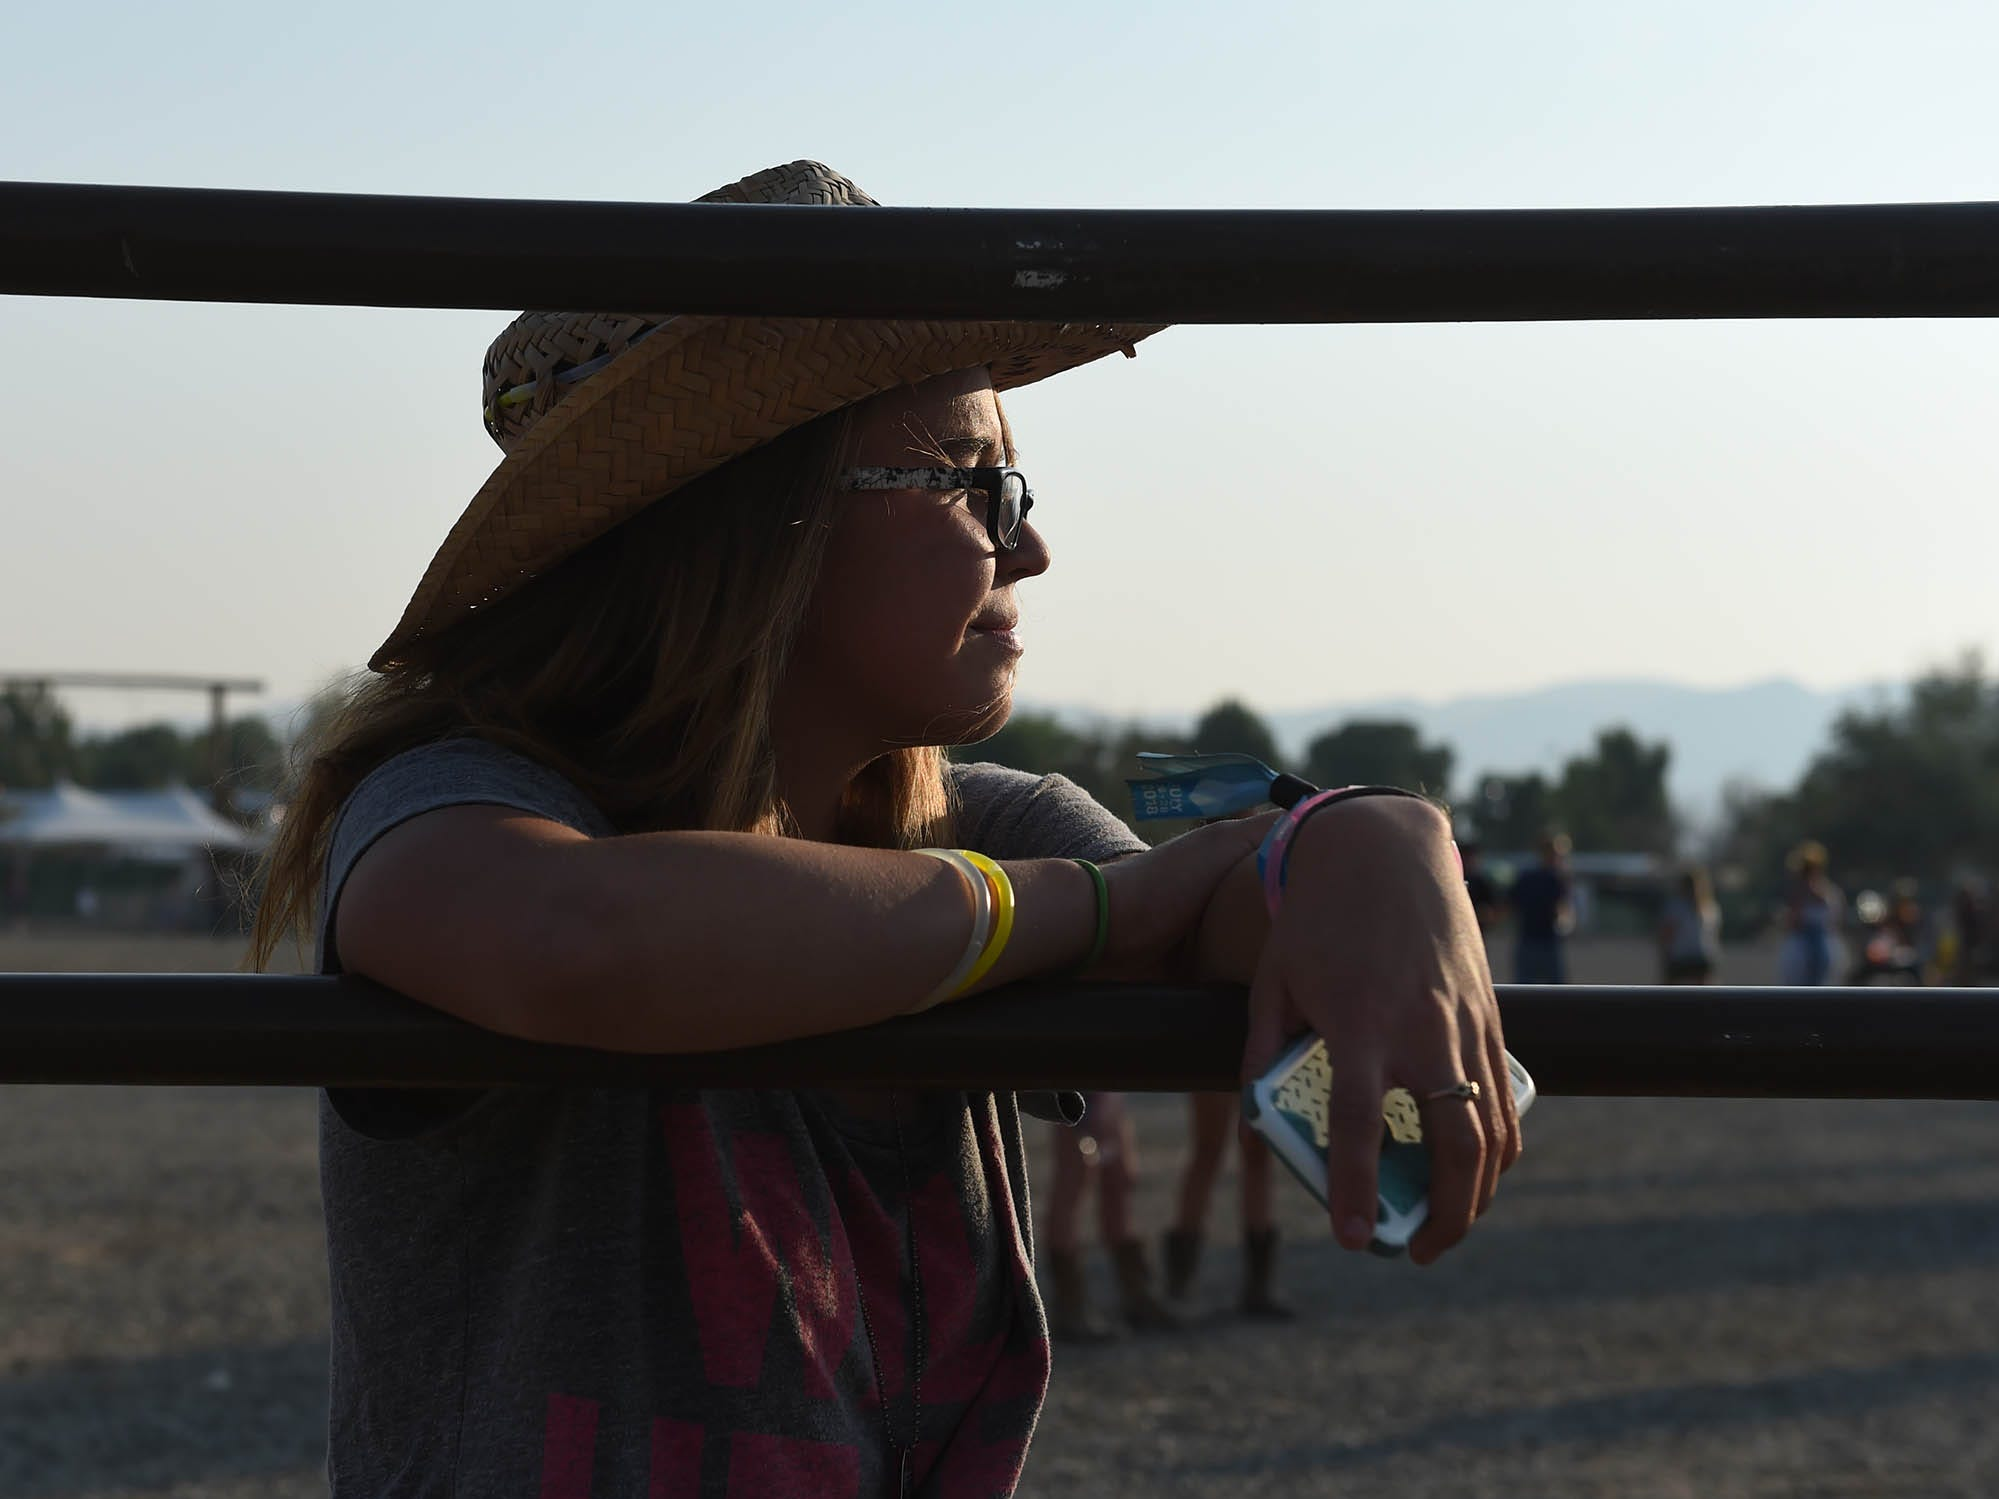 The fun continues on the final day of Nigh in the Country where thousand of country fans gathered at the country music festival in Yerington, Nevada on July 28, 2018.